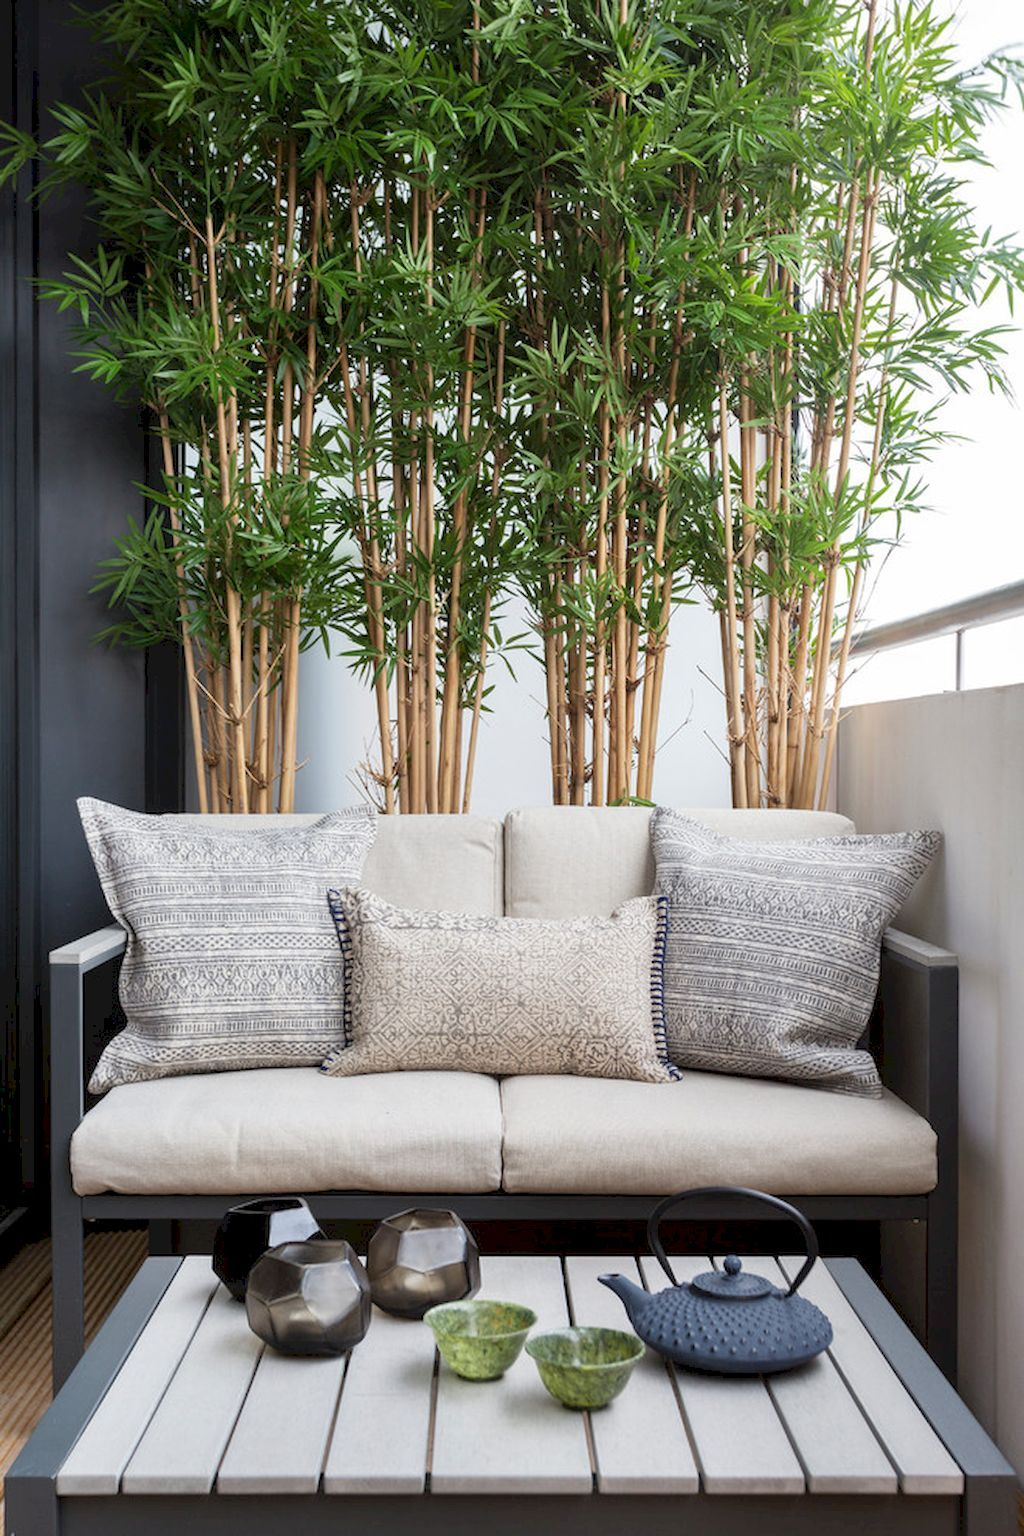 75 Small Balcony Decorating Ideas on A Budget | Balconies, Budgeting ...